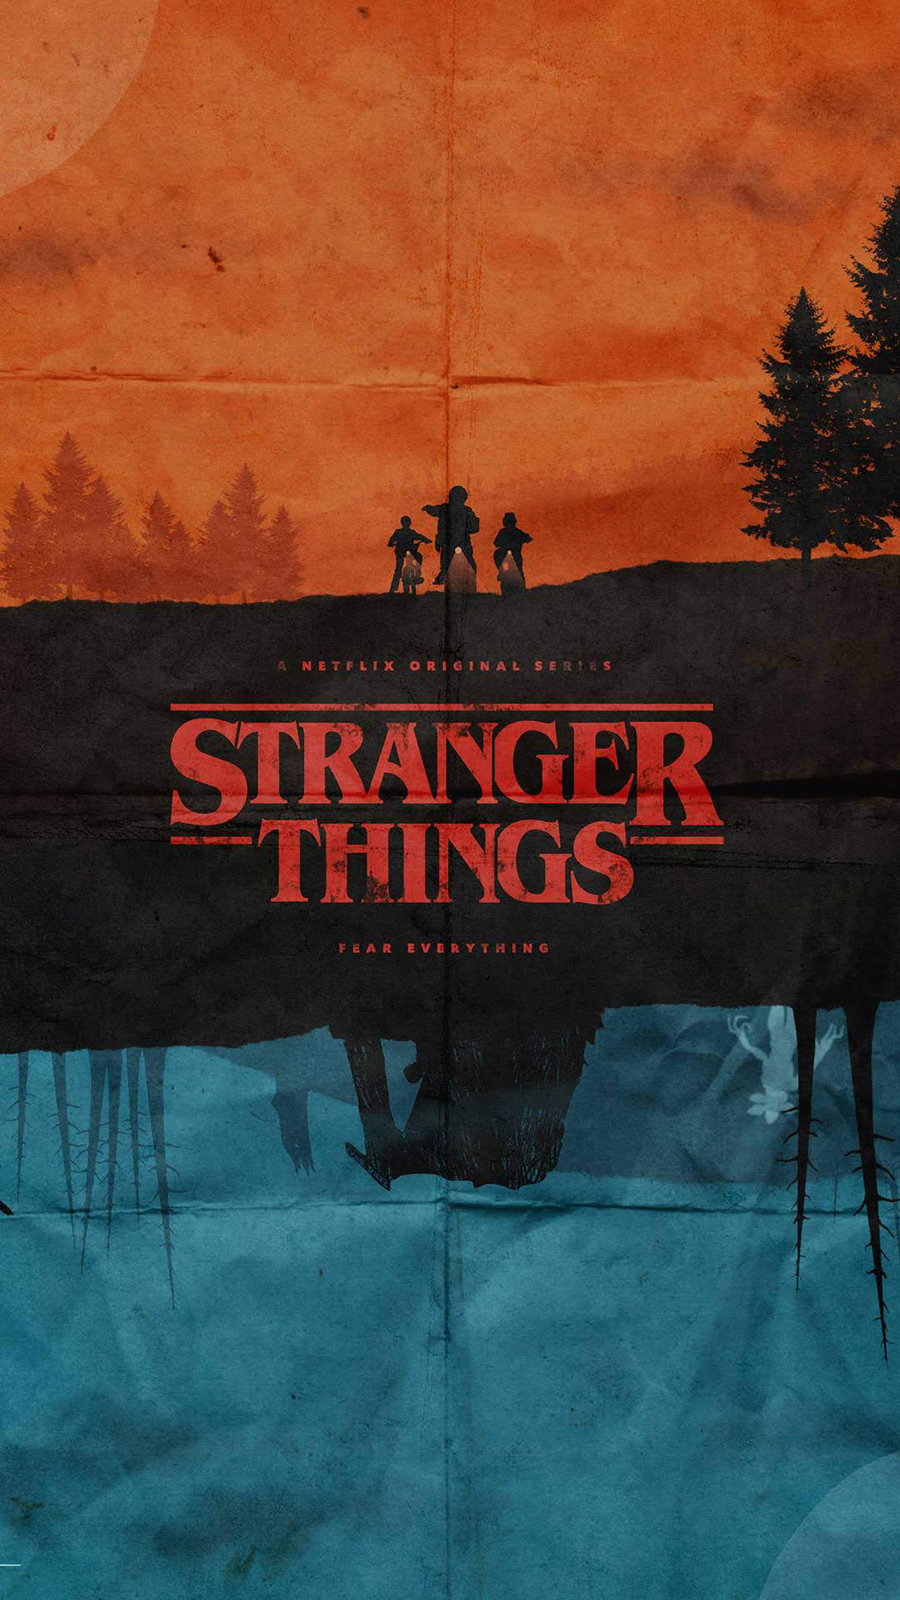 Apple iPhone Stranger Things Wallpapers Free Download